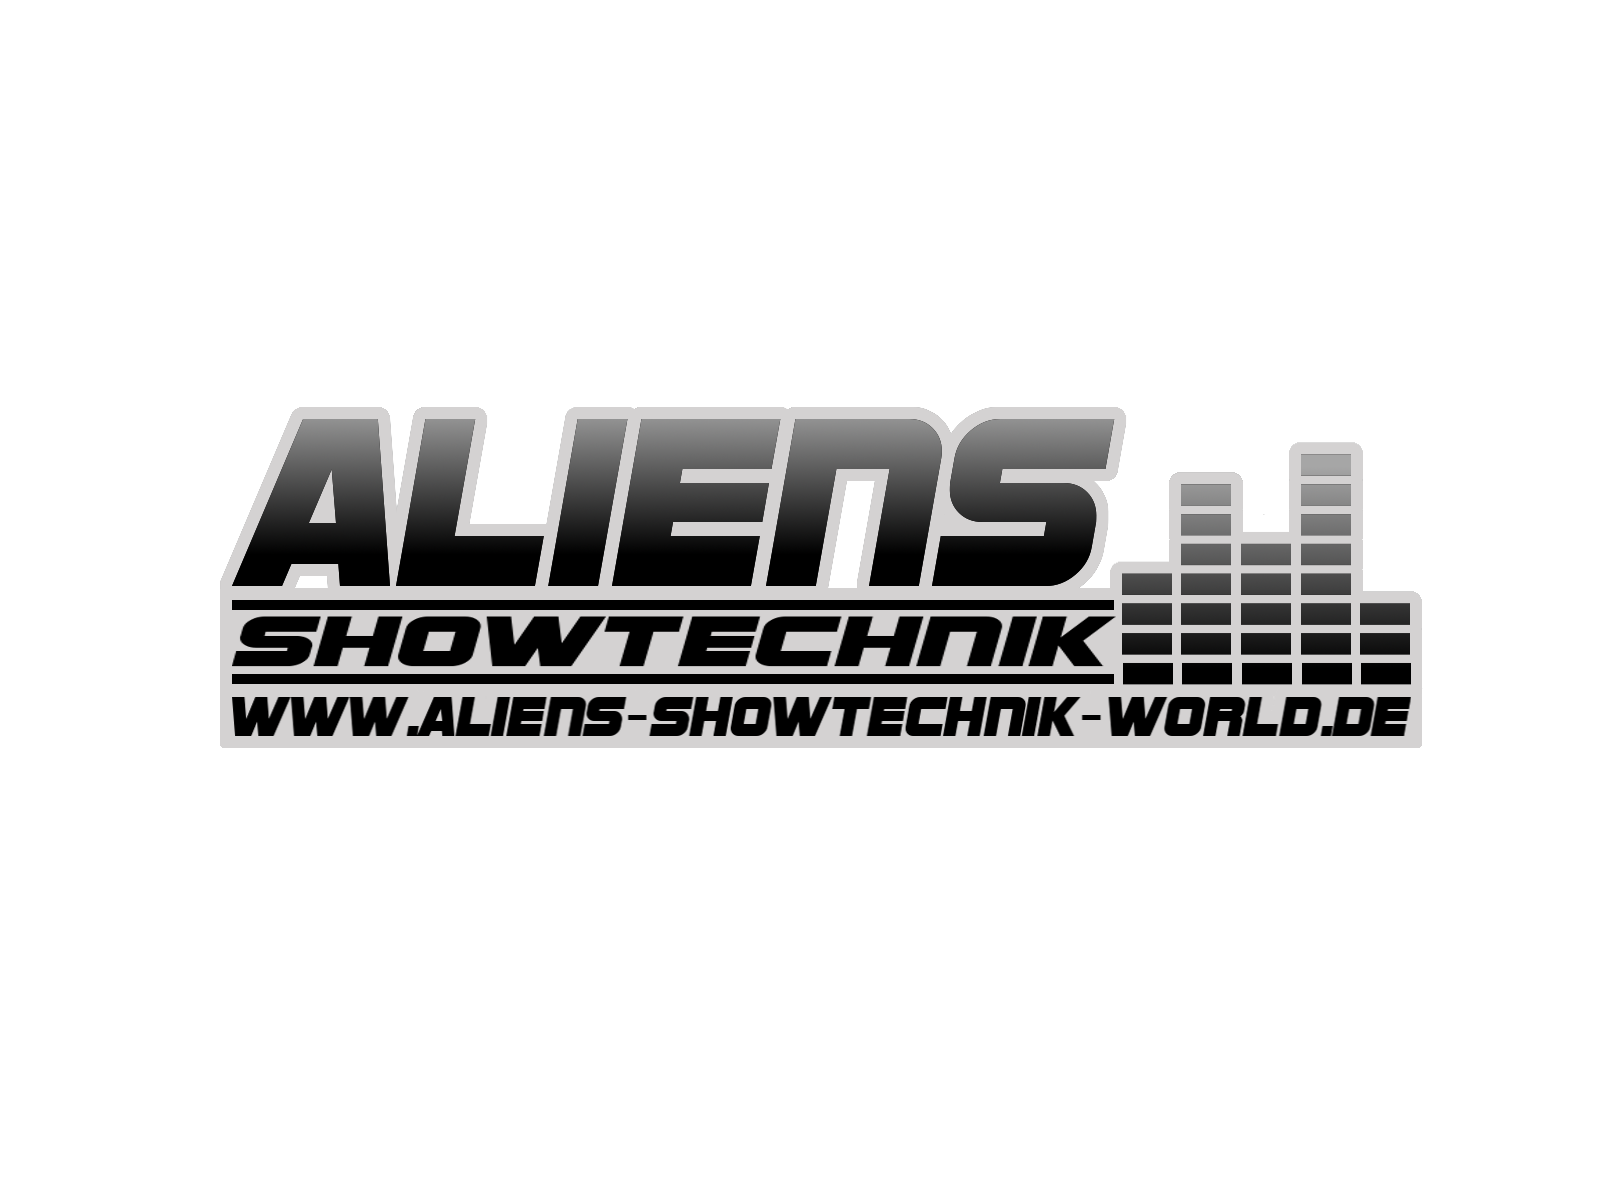 Aliens Showtechnik